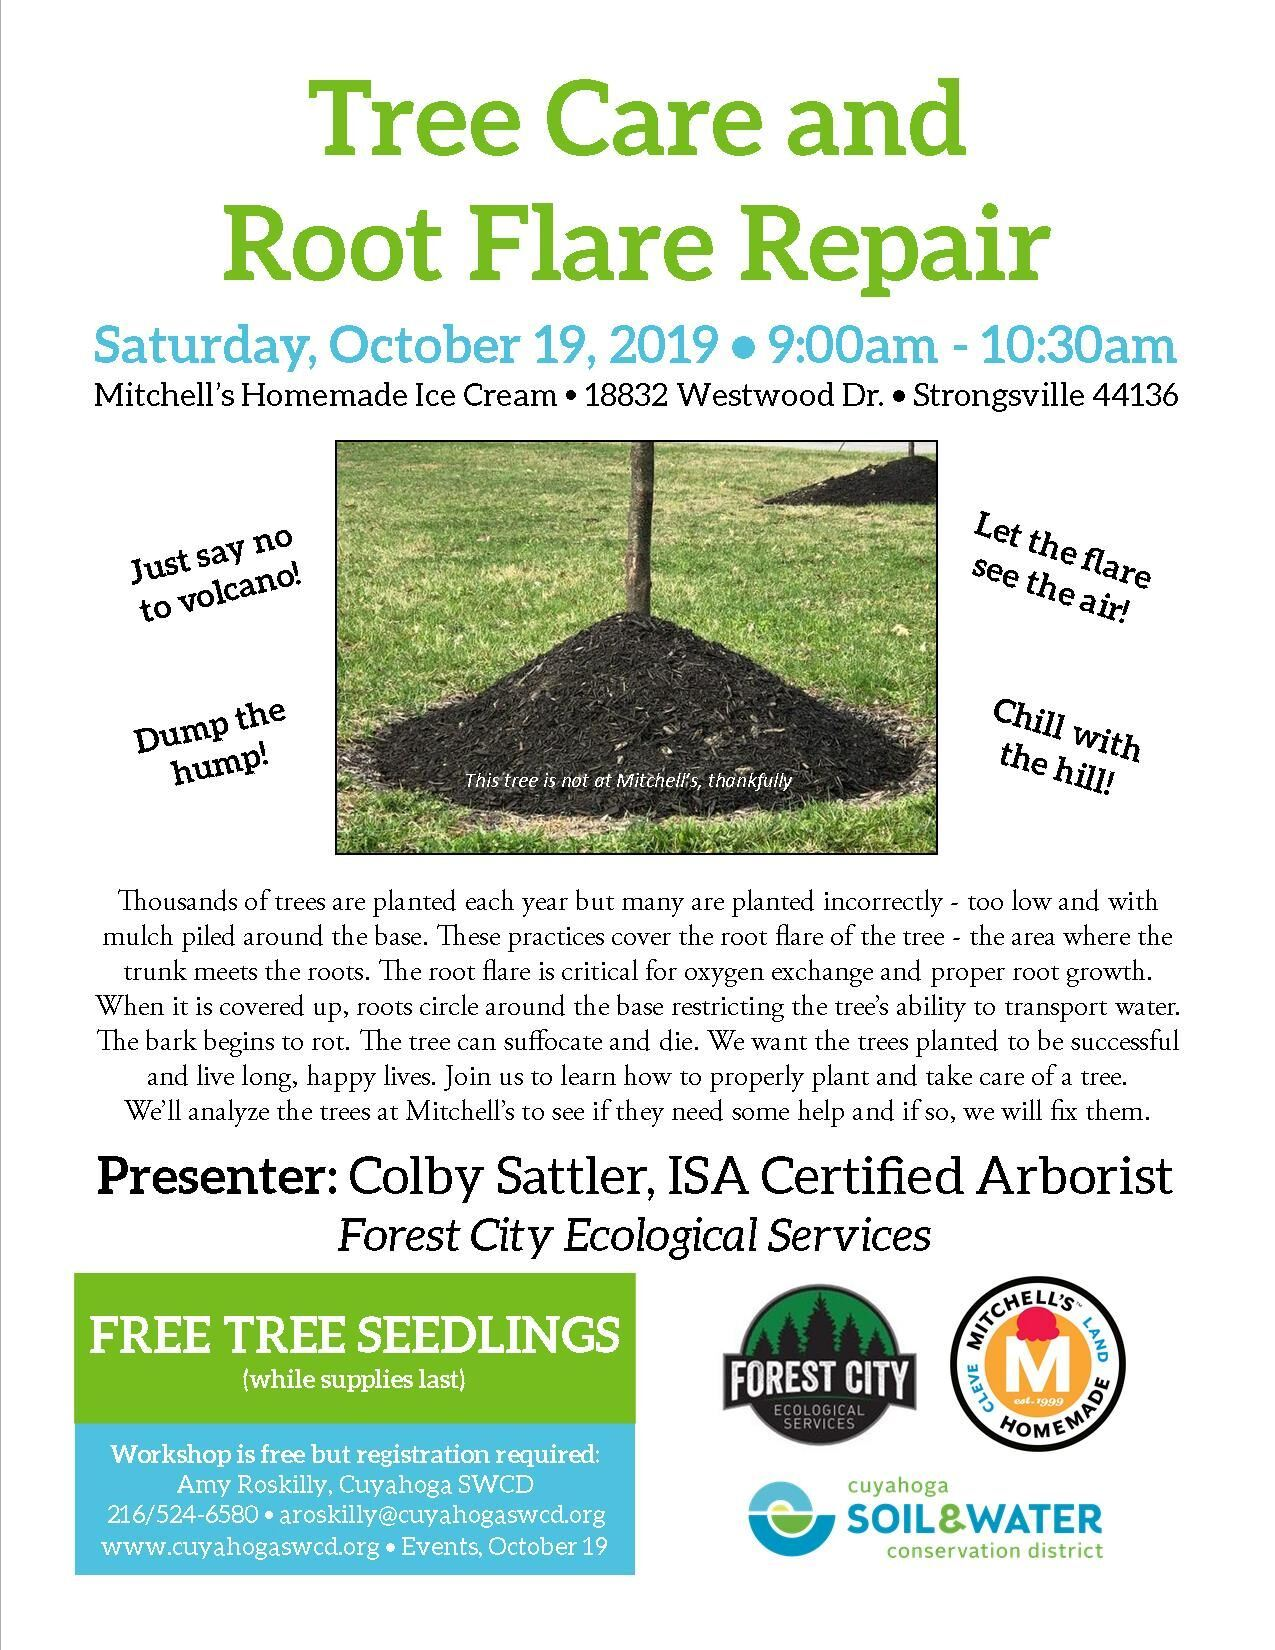 Tree Care and Root Flare Repair